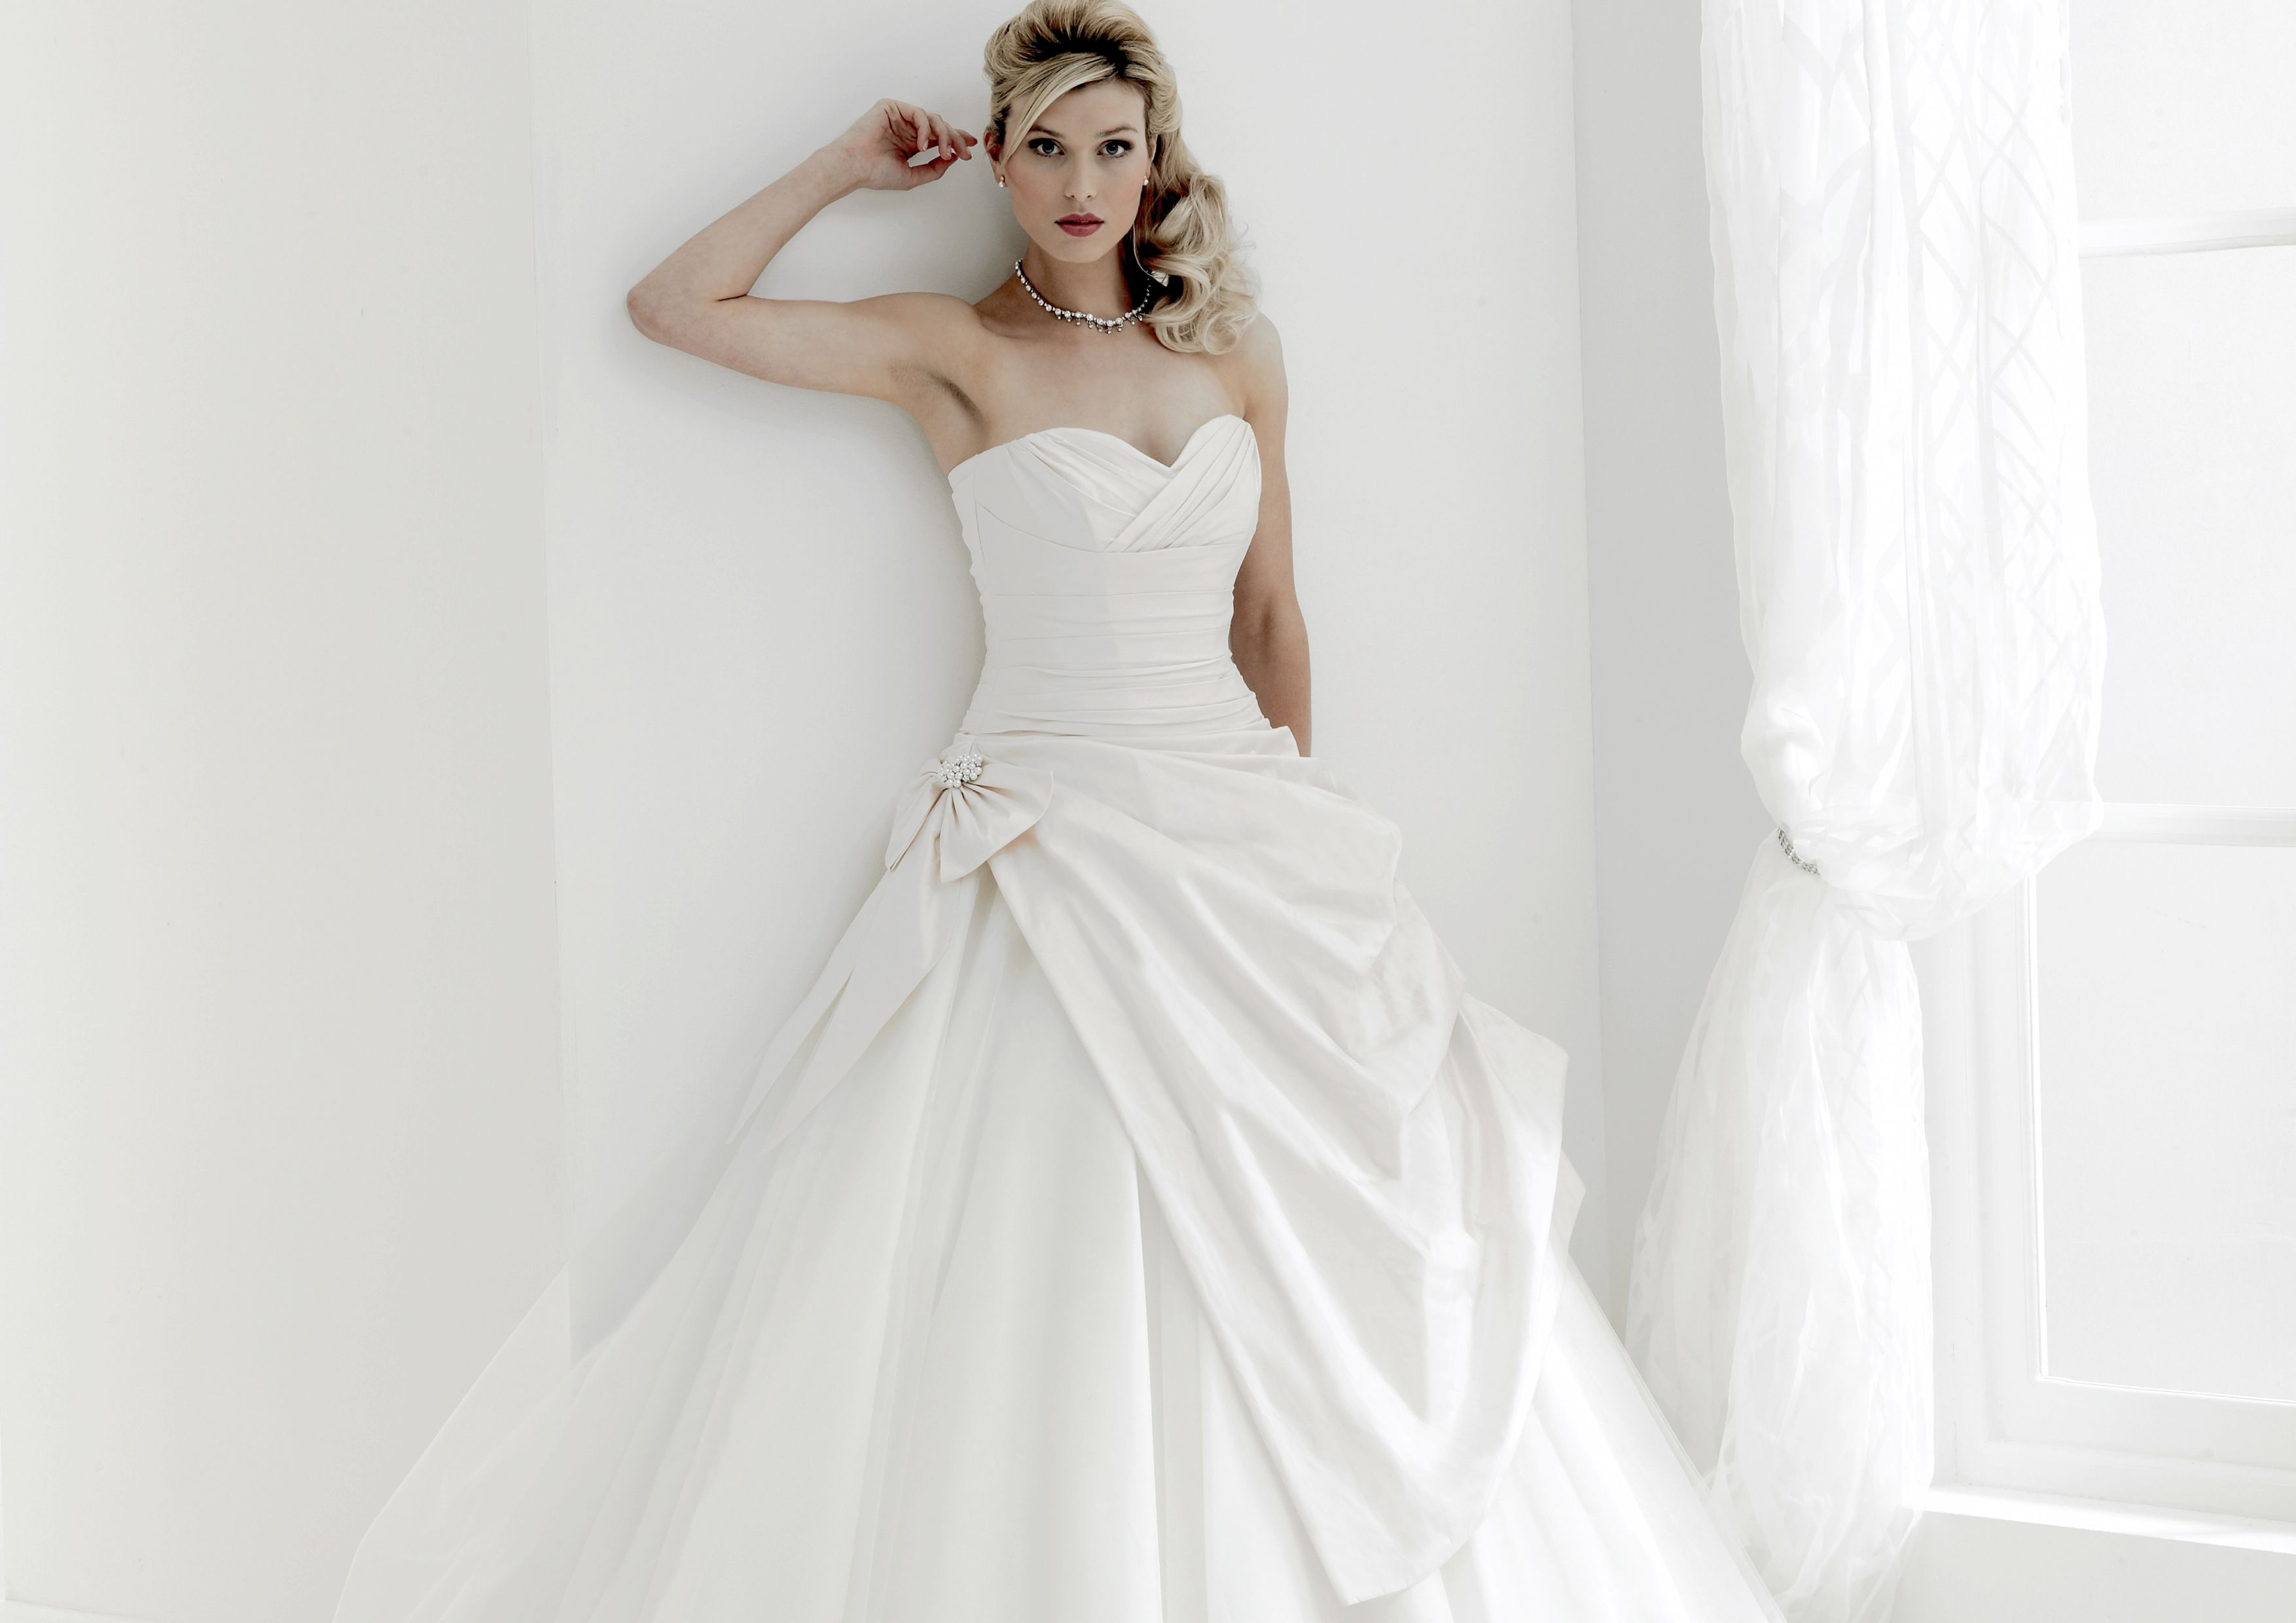 Best seller from Nicola's Splendour Collection - Bijou has couture styling with silk bodice and apron over contrasting tulle hooped skirt